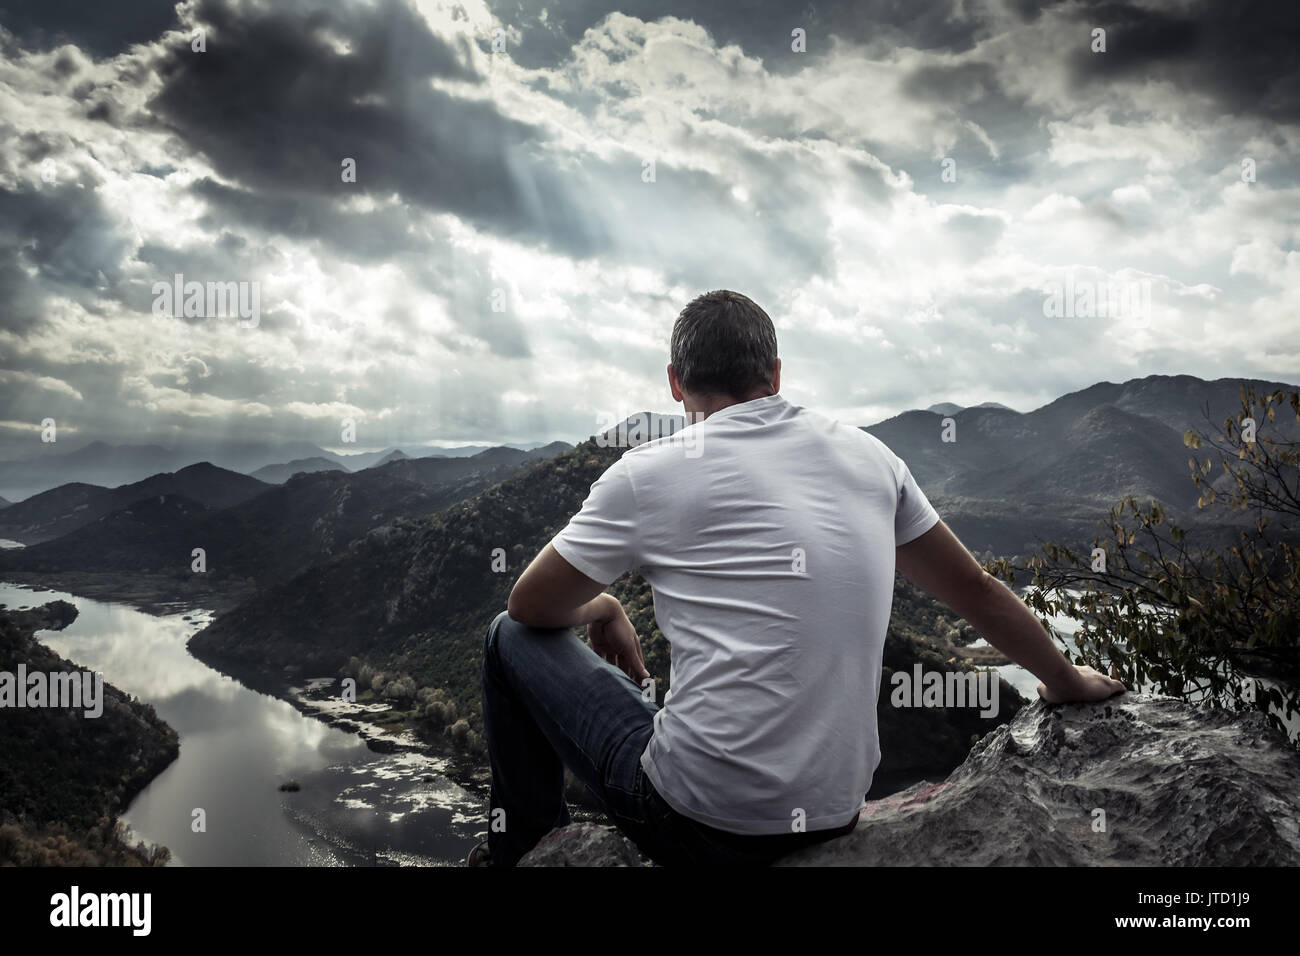 Lonely man looking with hope at horizon on mountain peak with dramatic sunlight during sunset with effect of light at the end of tunnel - Stock Image